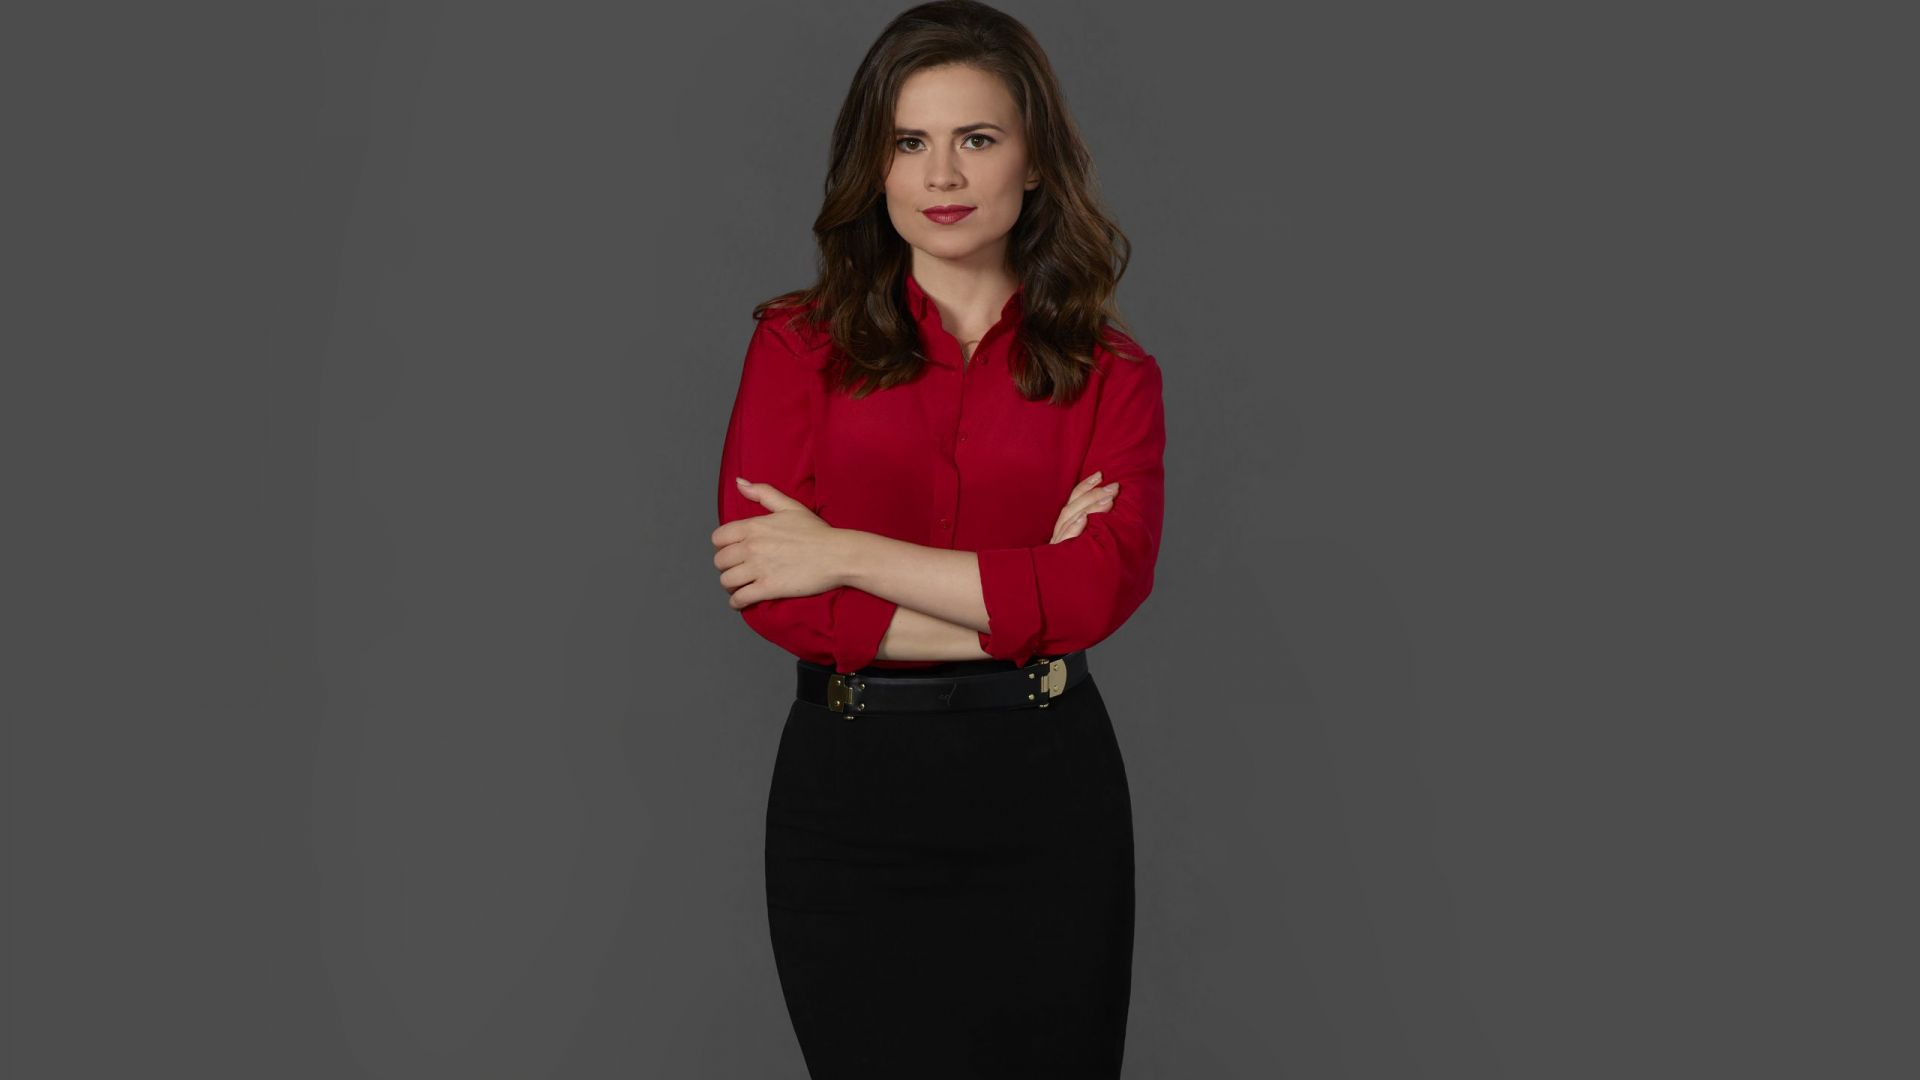 Wallpaper Hayley Atwell, celebrity, red shirt